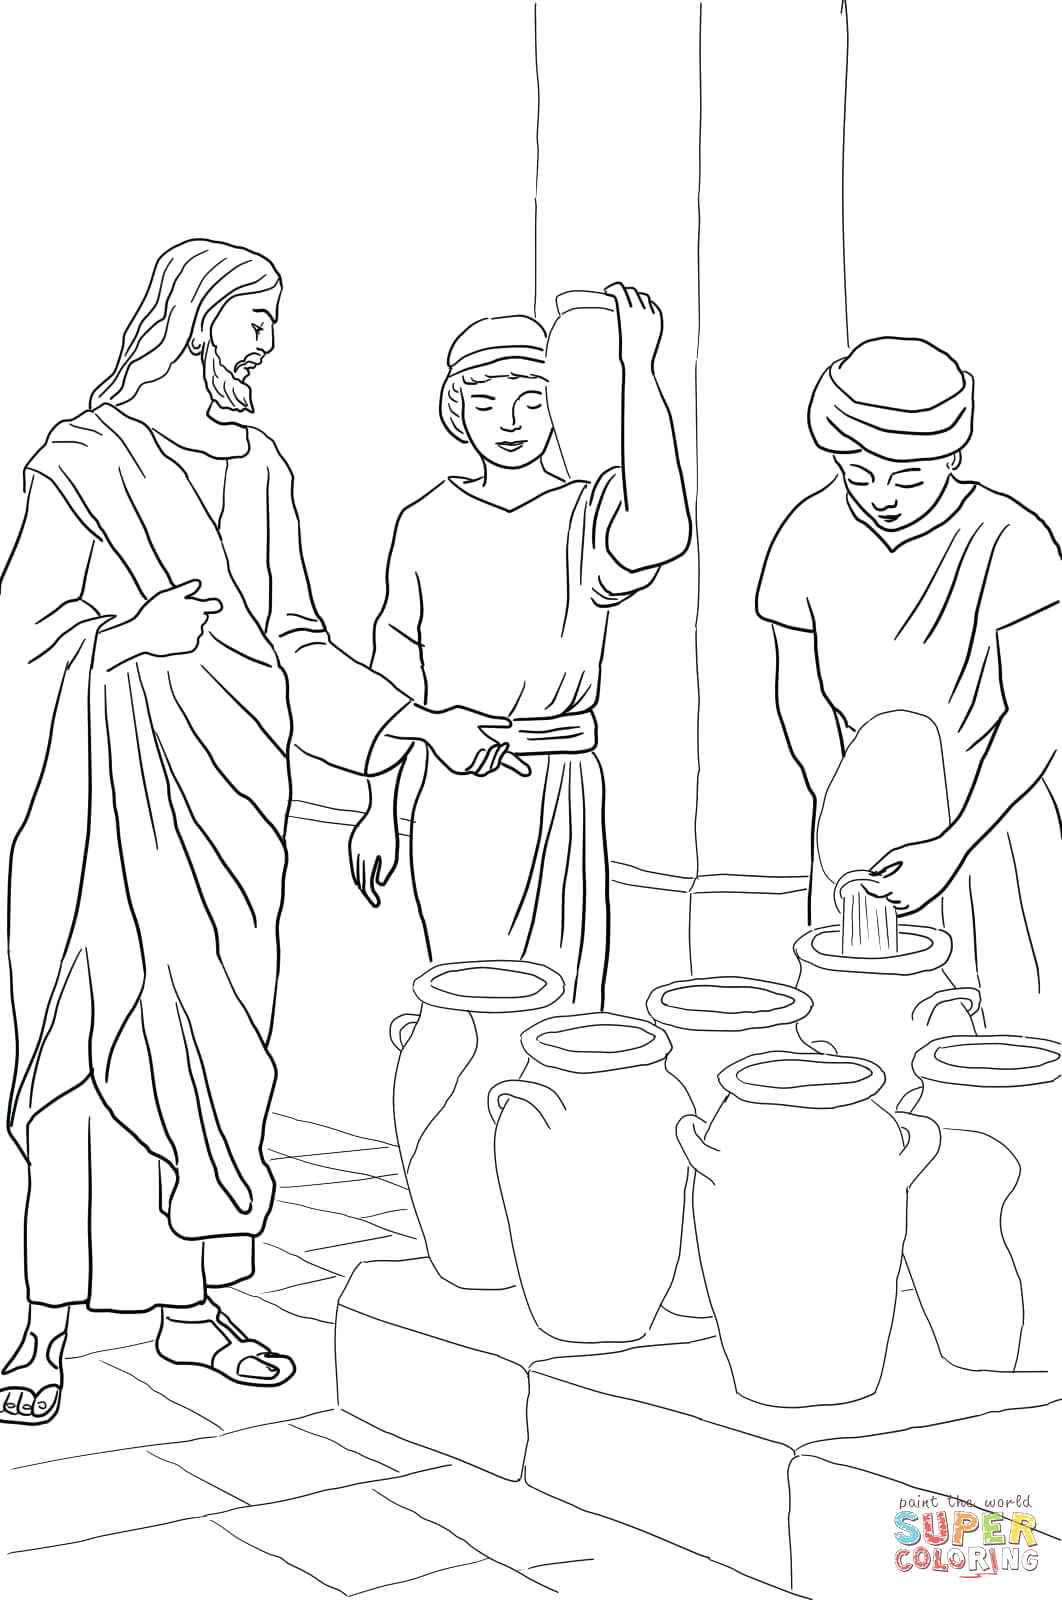 Coloring Pages Jesus Turns Water Into Wine Jesus Turns Water Into Wine Coloring Page Coloring Home